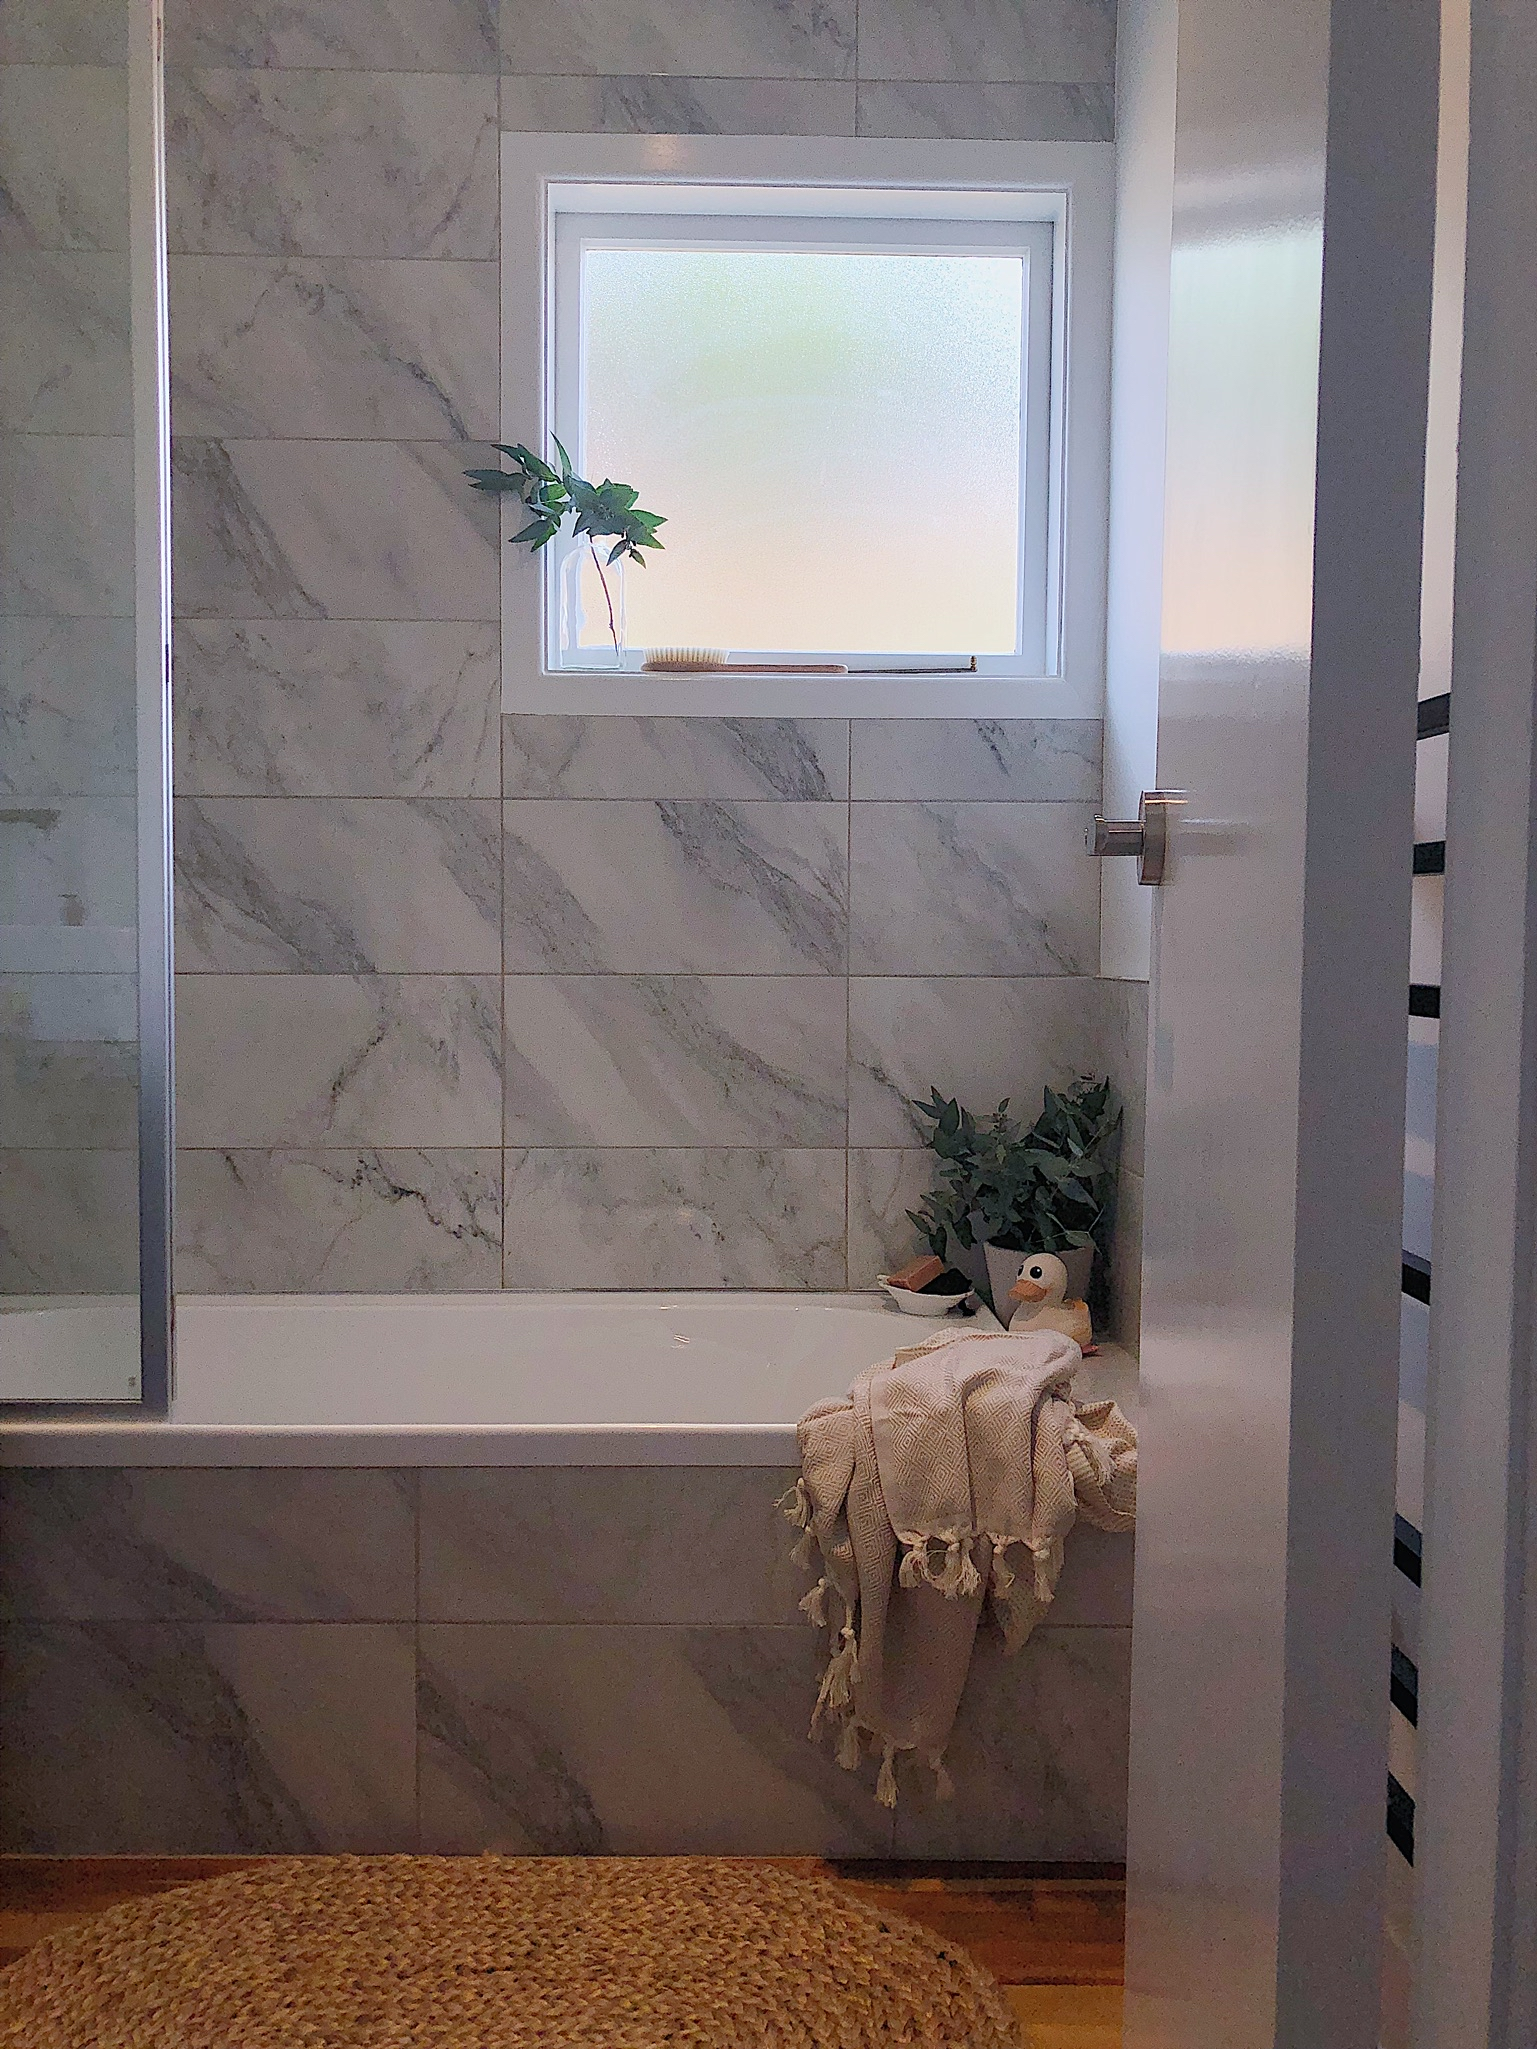 Pearson and Projects Relocatable Reno Bathroom Project Marble Tile Bath Screen .jpg